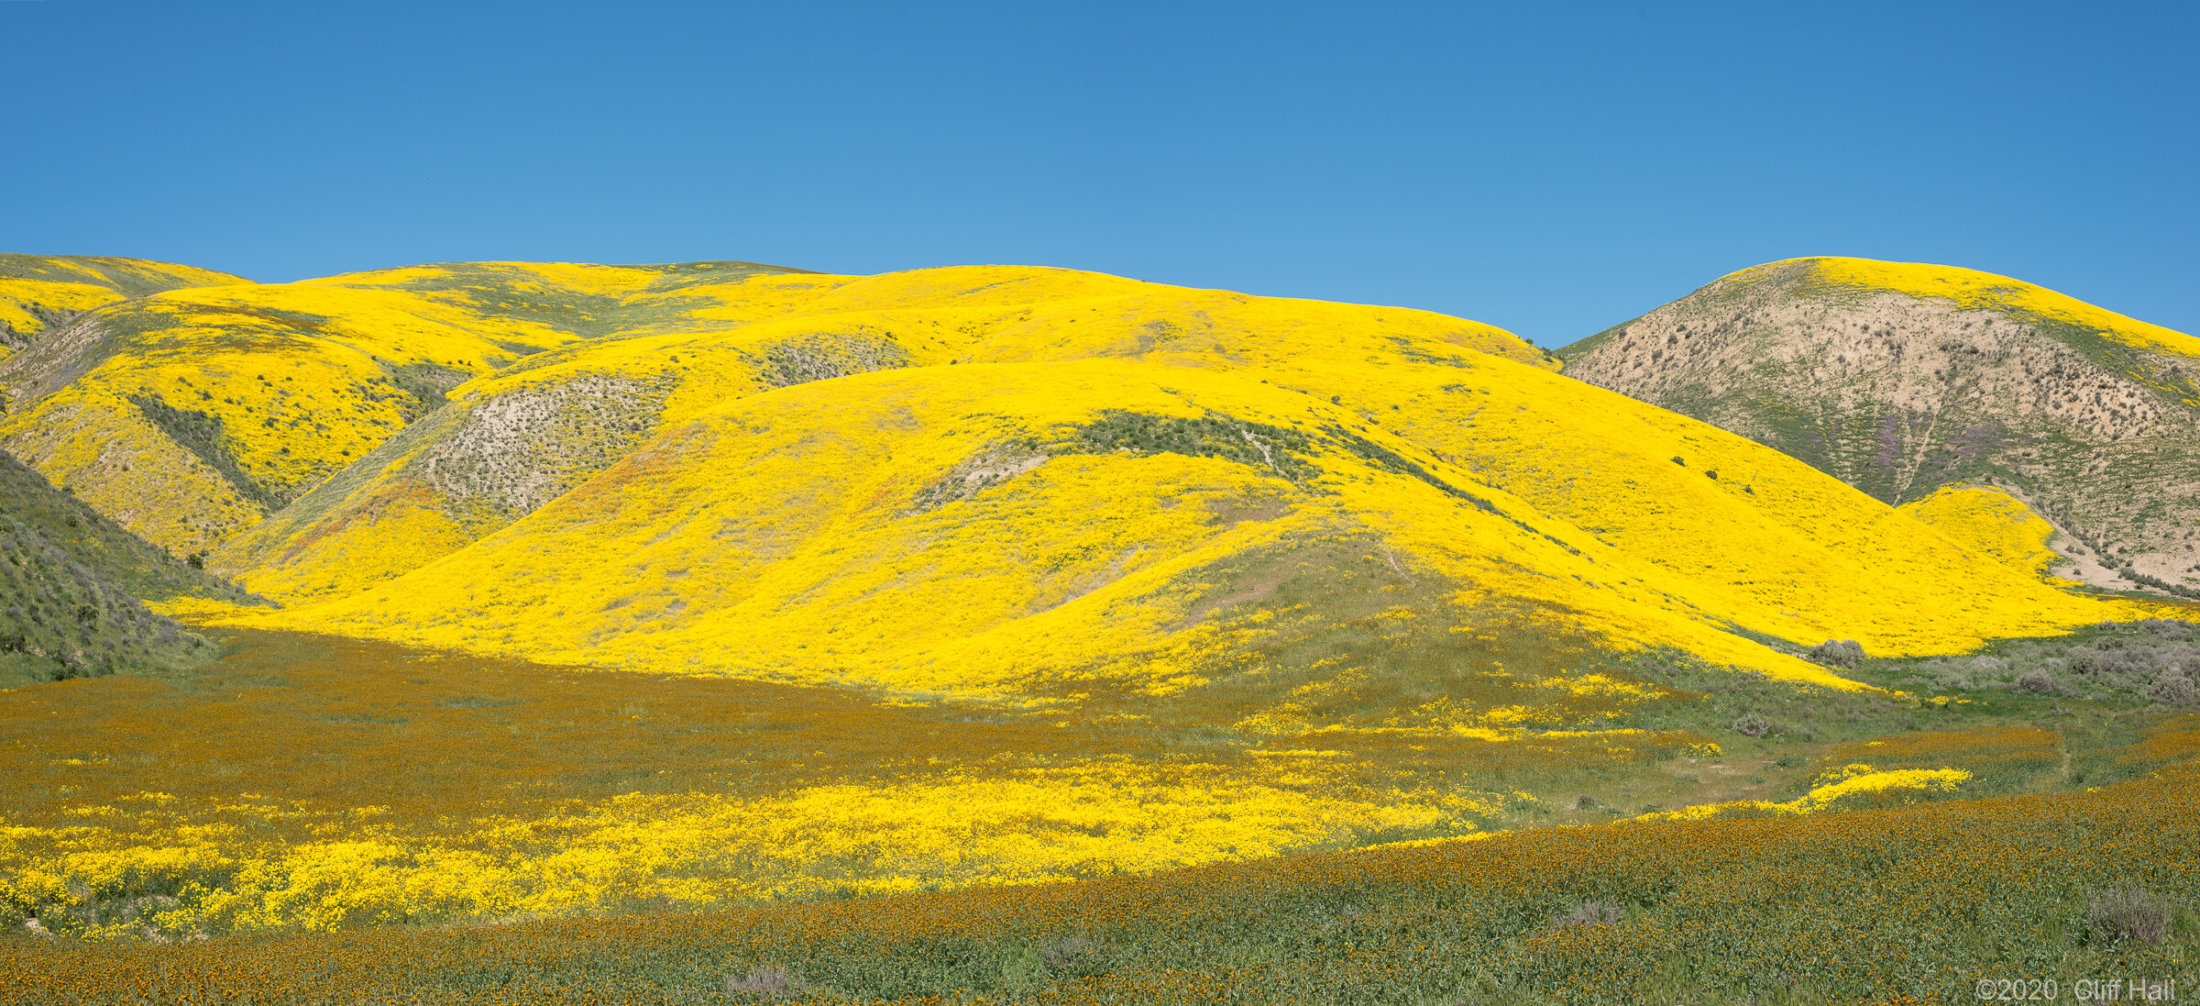 If you like yellow, this is the place